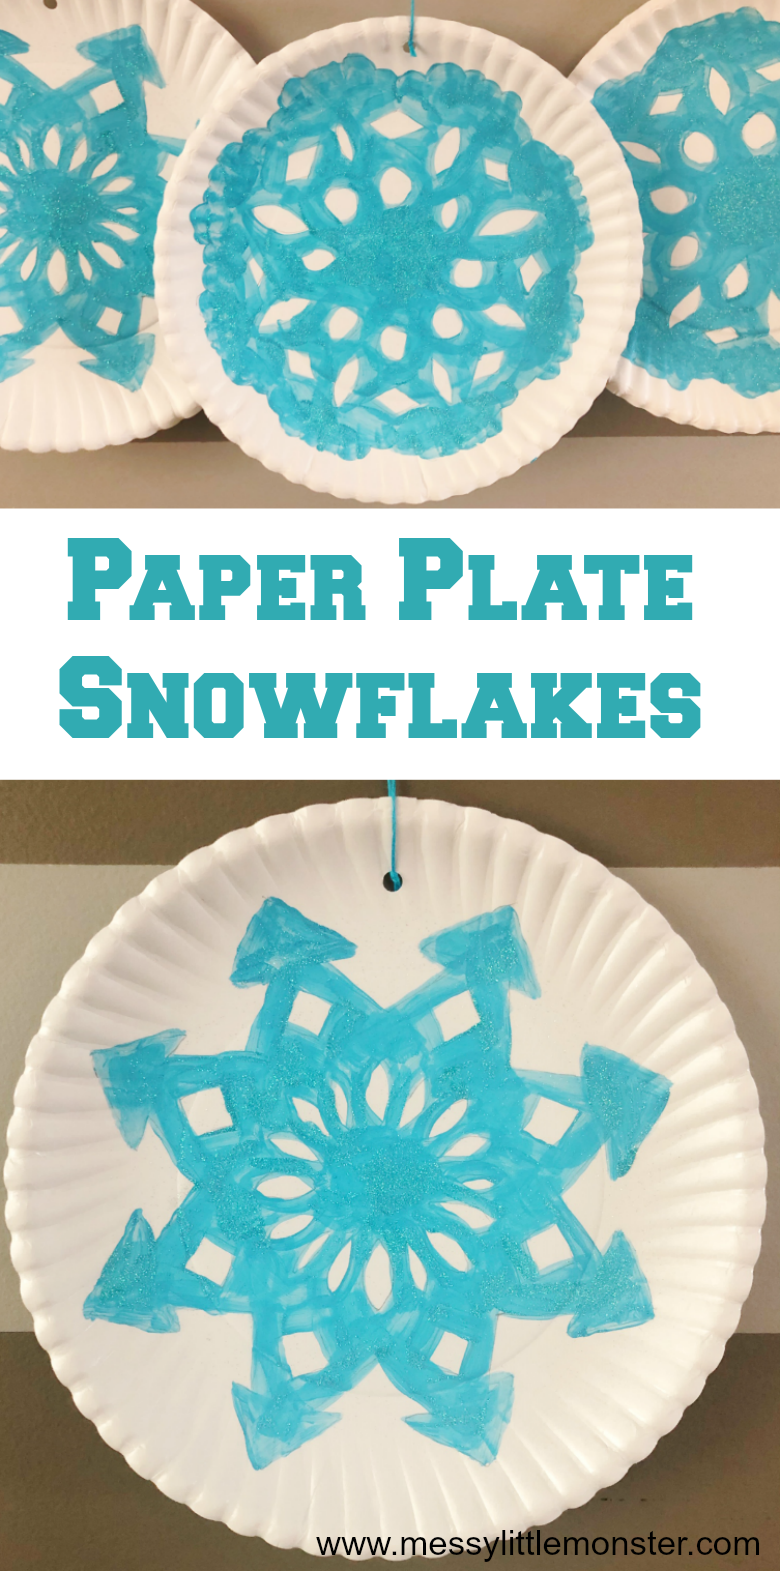 Paper plate snowflake craft for kids. Easy snowflake art for preschoolers to make as a fun winter activity.